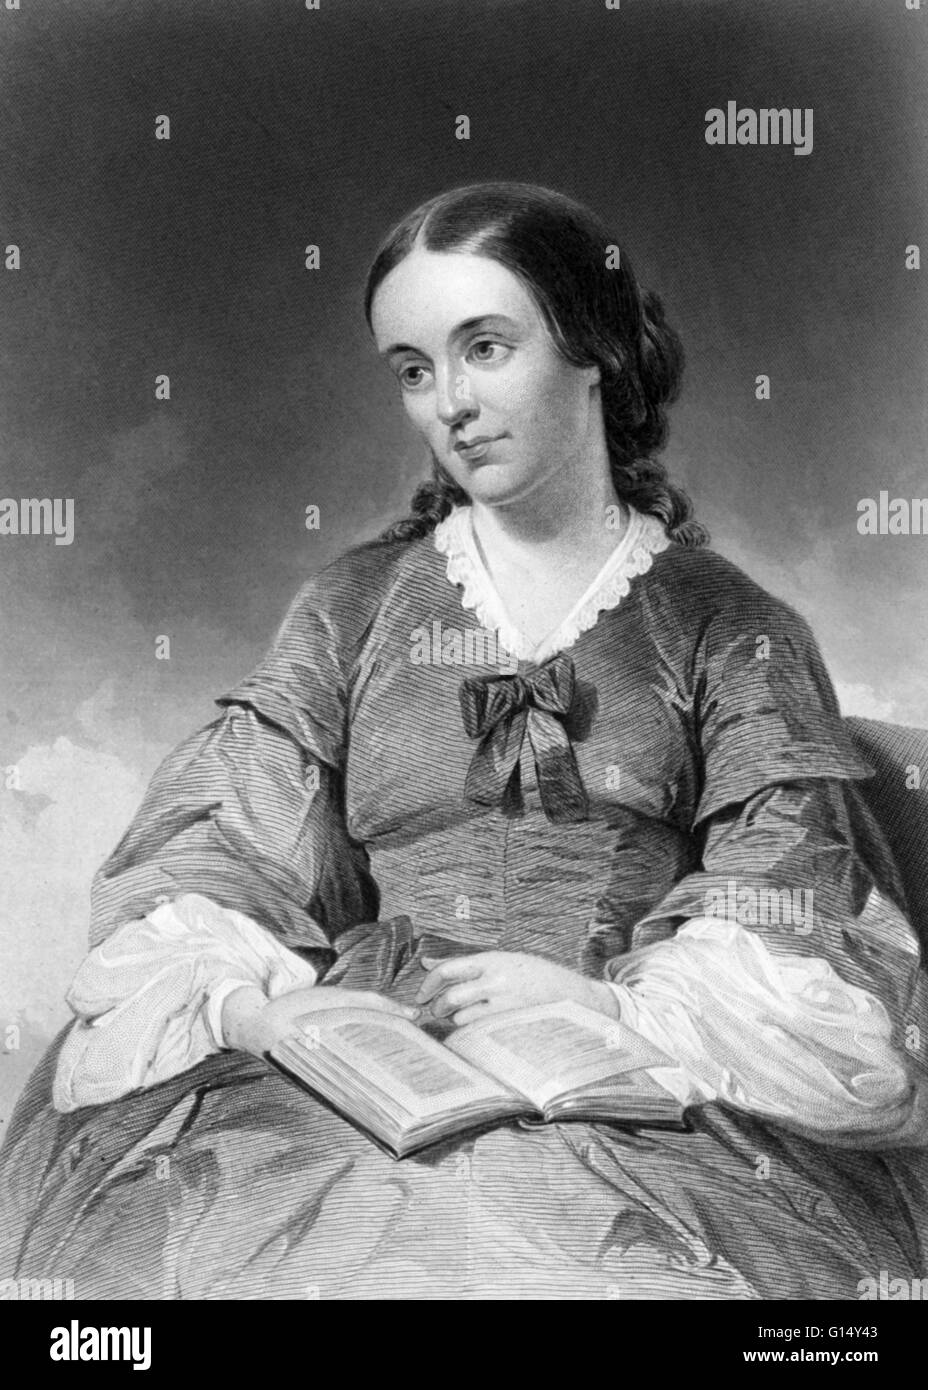 Margaret Fuller (1810-1950), American writer, journalist, critic, and women's rights activist. She was associated - Stock Image